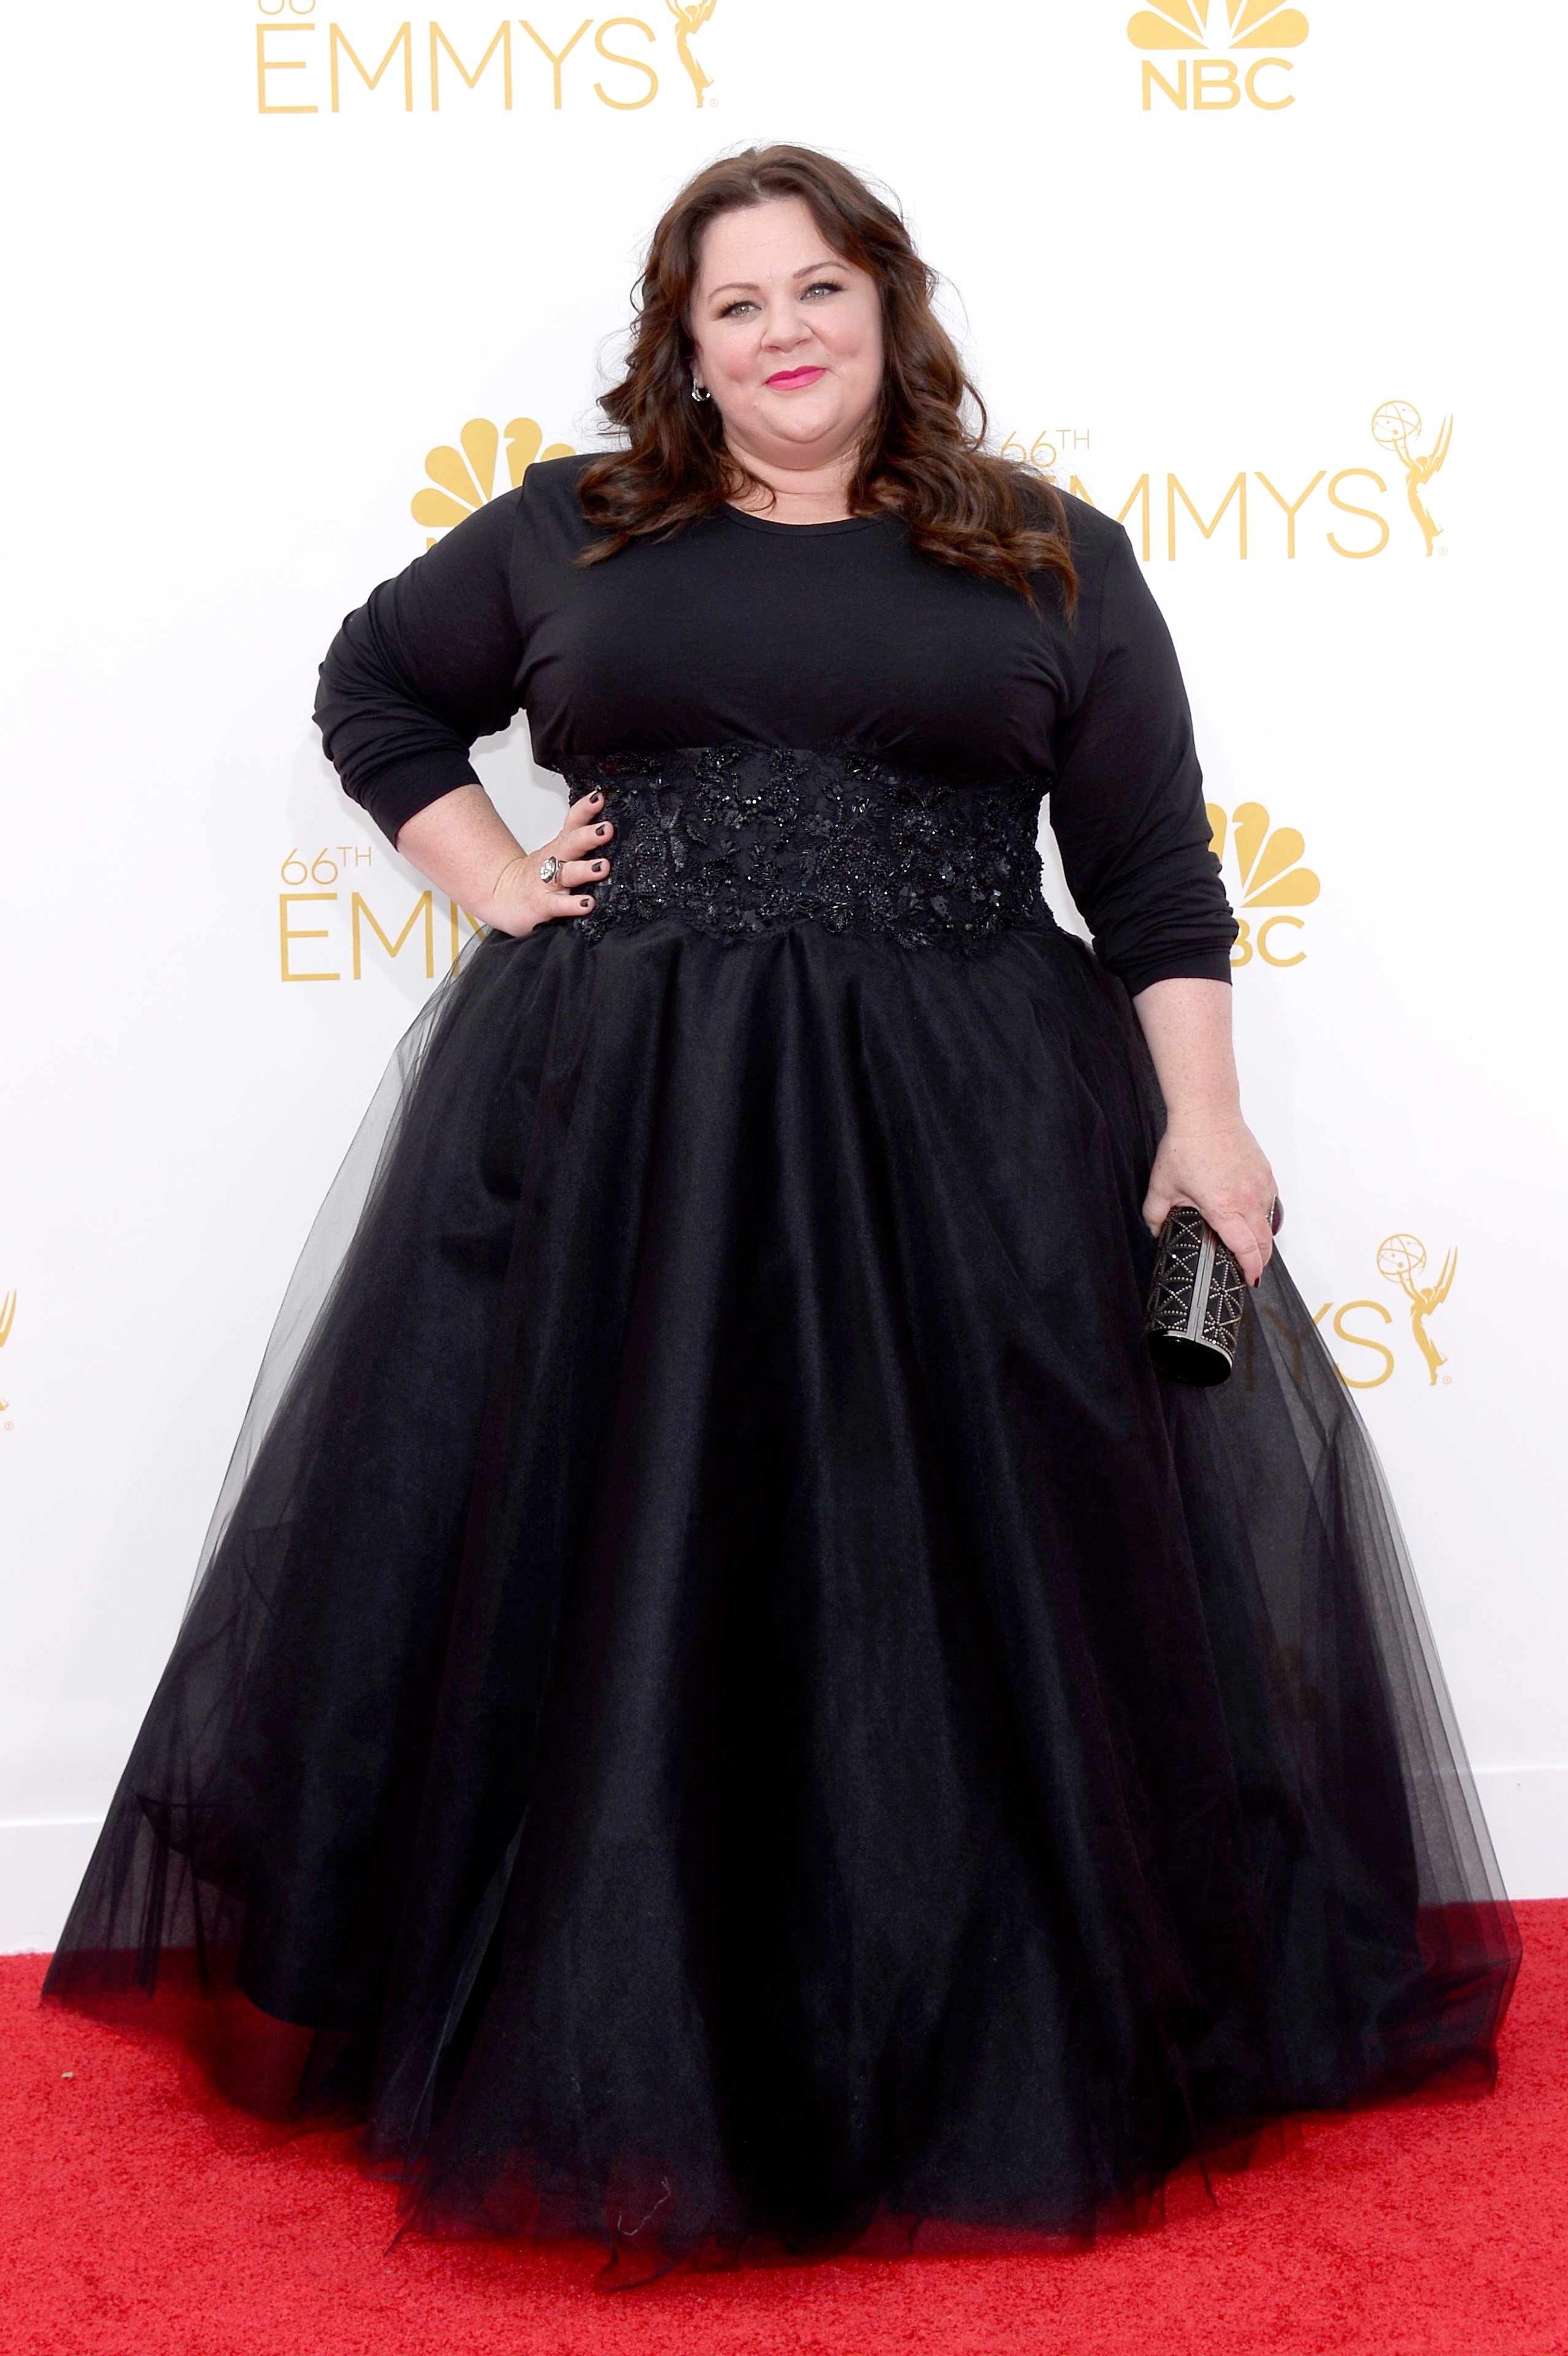 Melissa McCarthy arrives to the 66th Annual Primetime Emmy Awards held at the Nokia Theater on August 25, 2014.